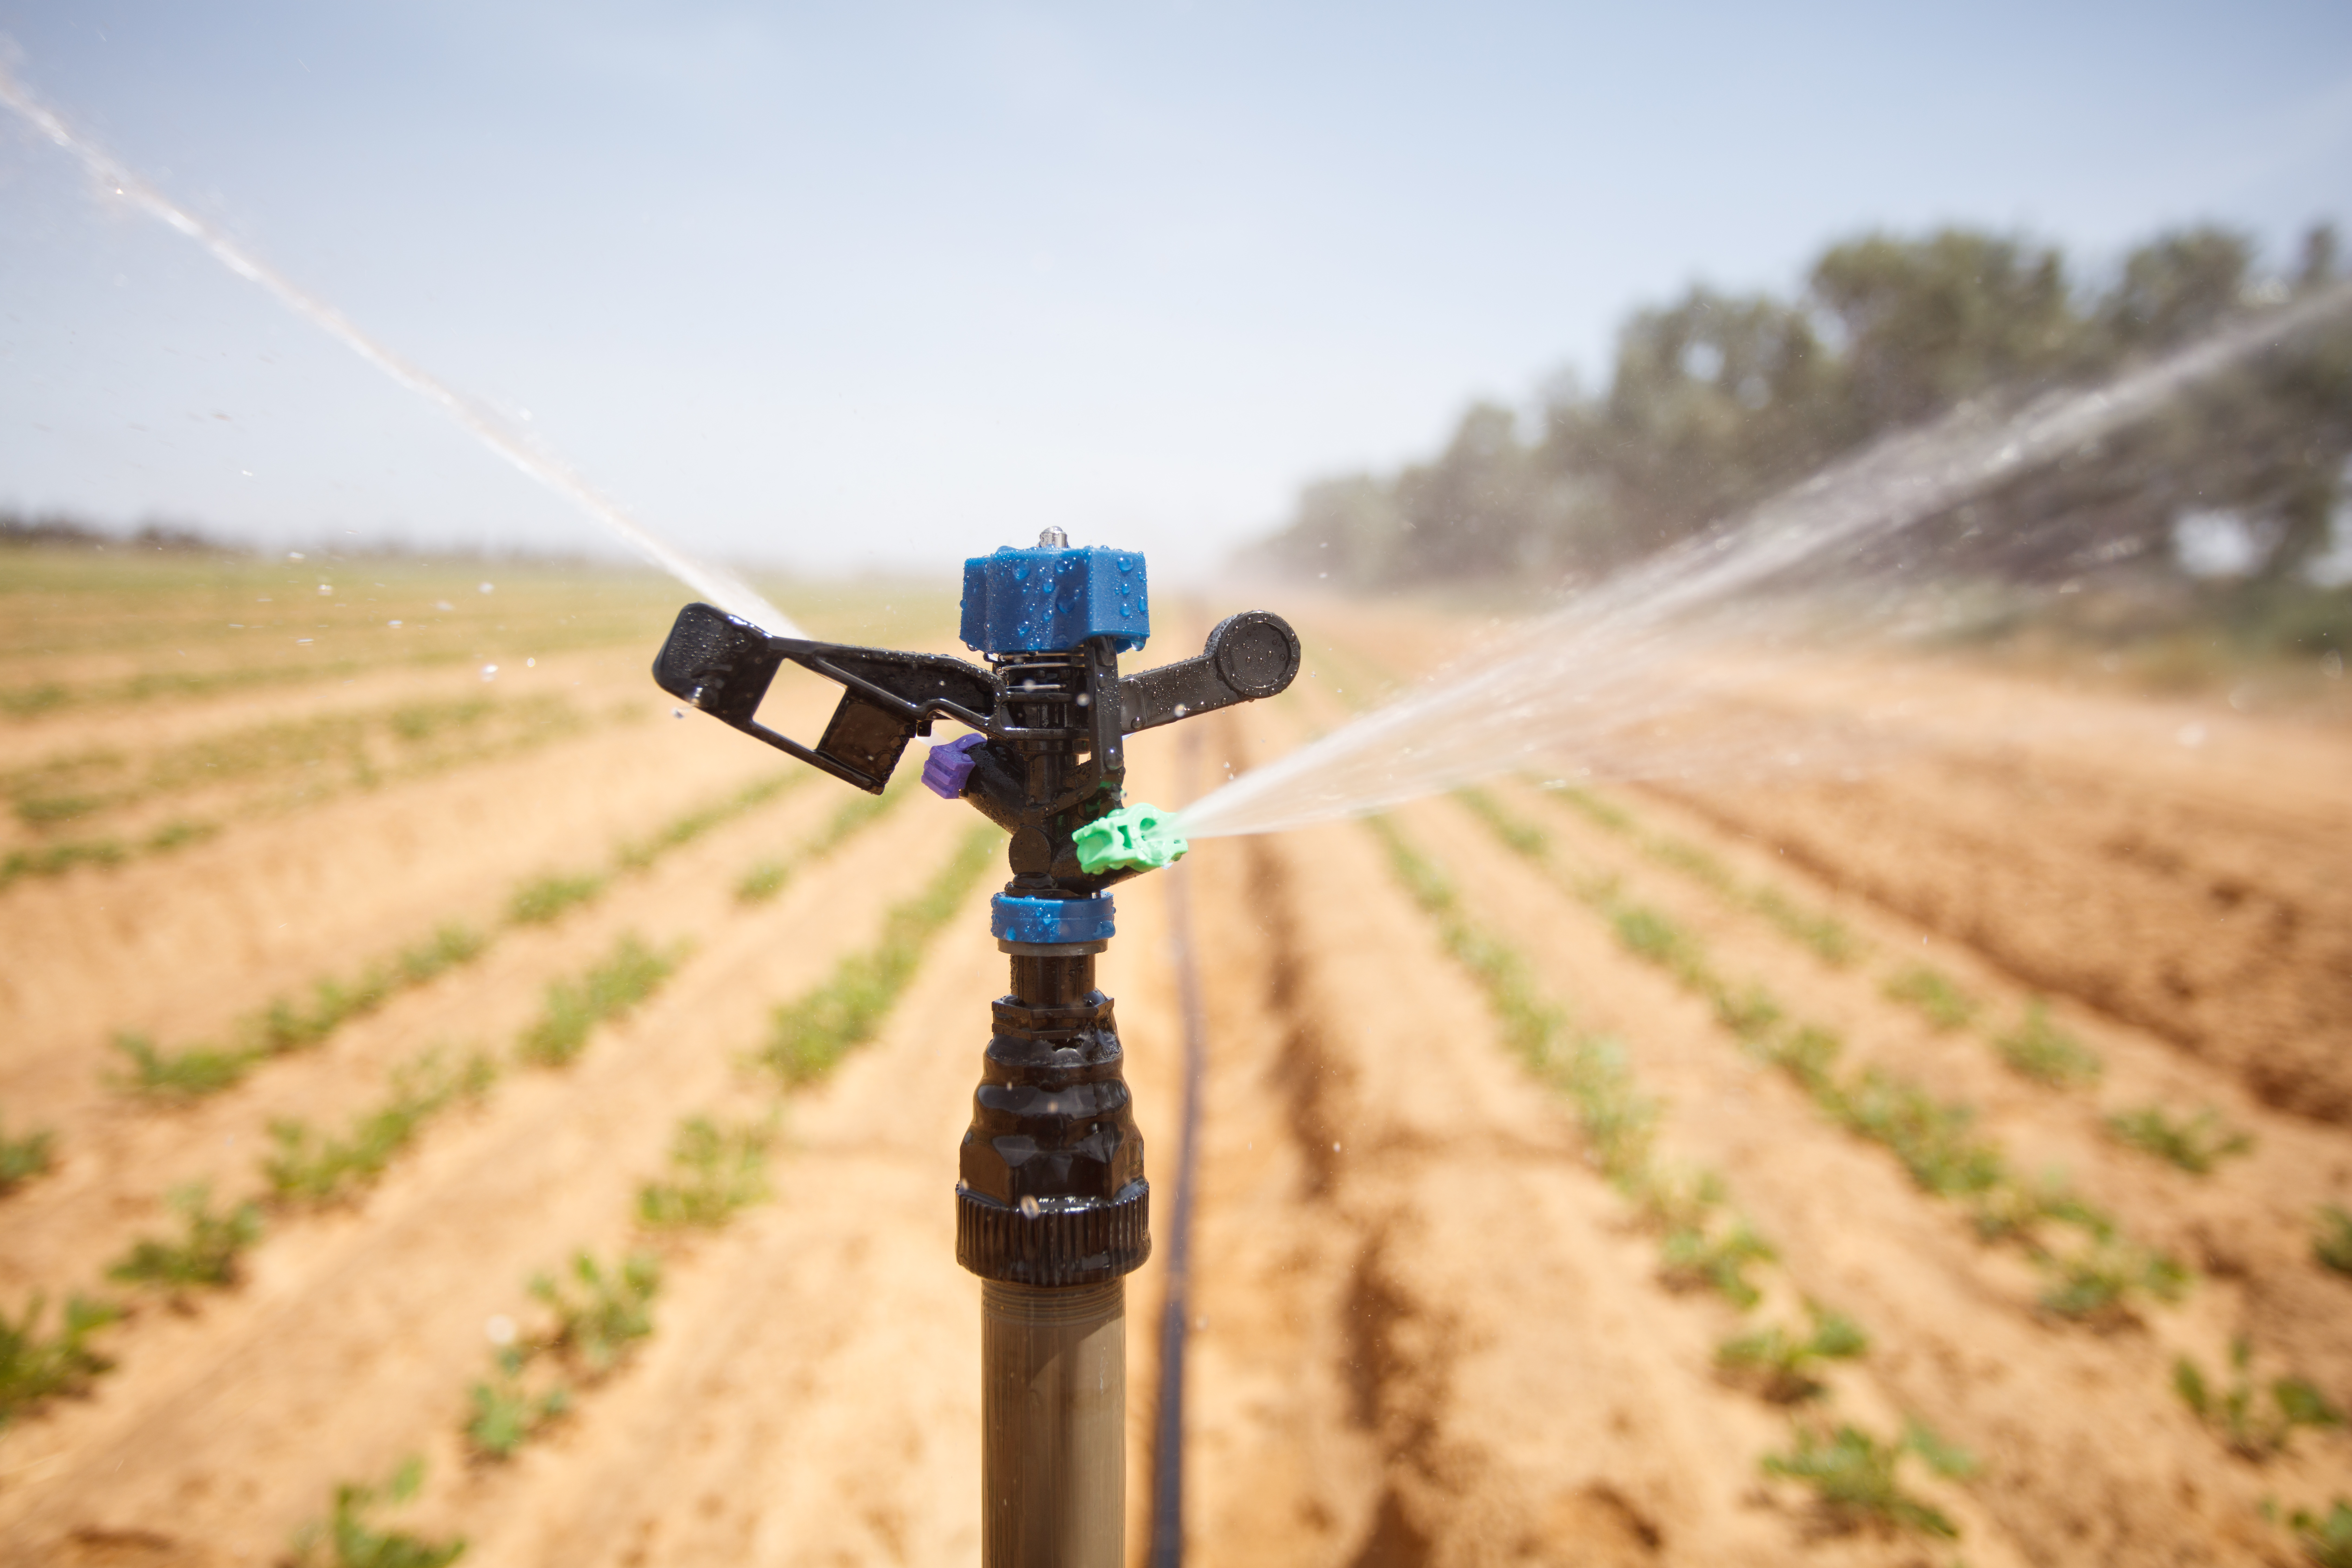 Sprinkler irrigation